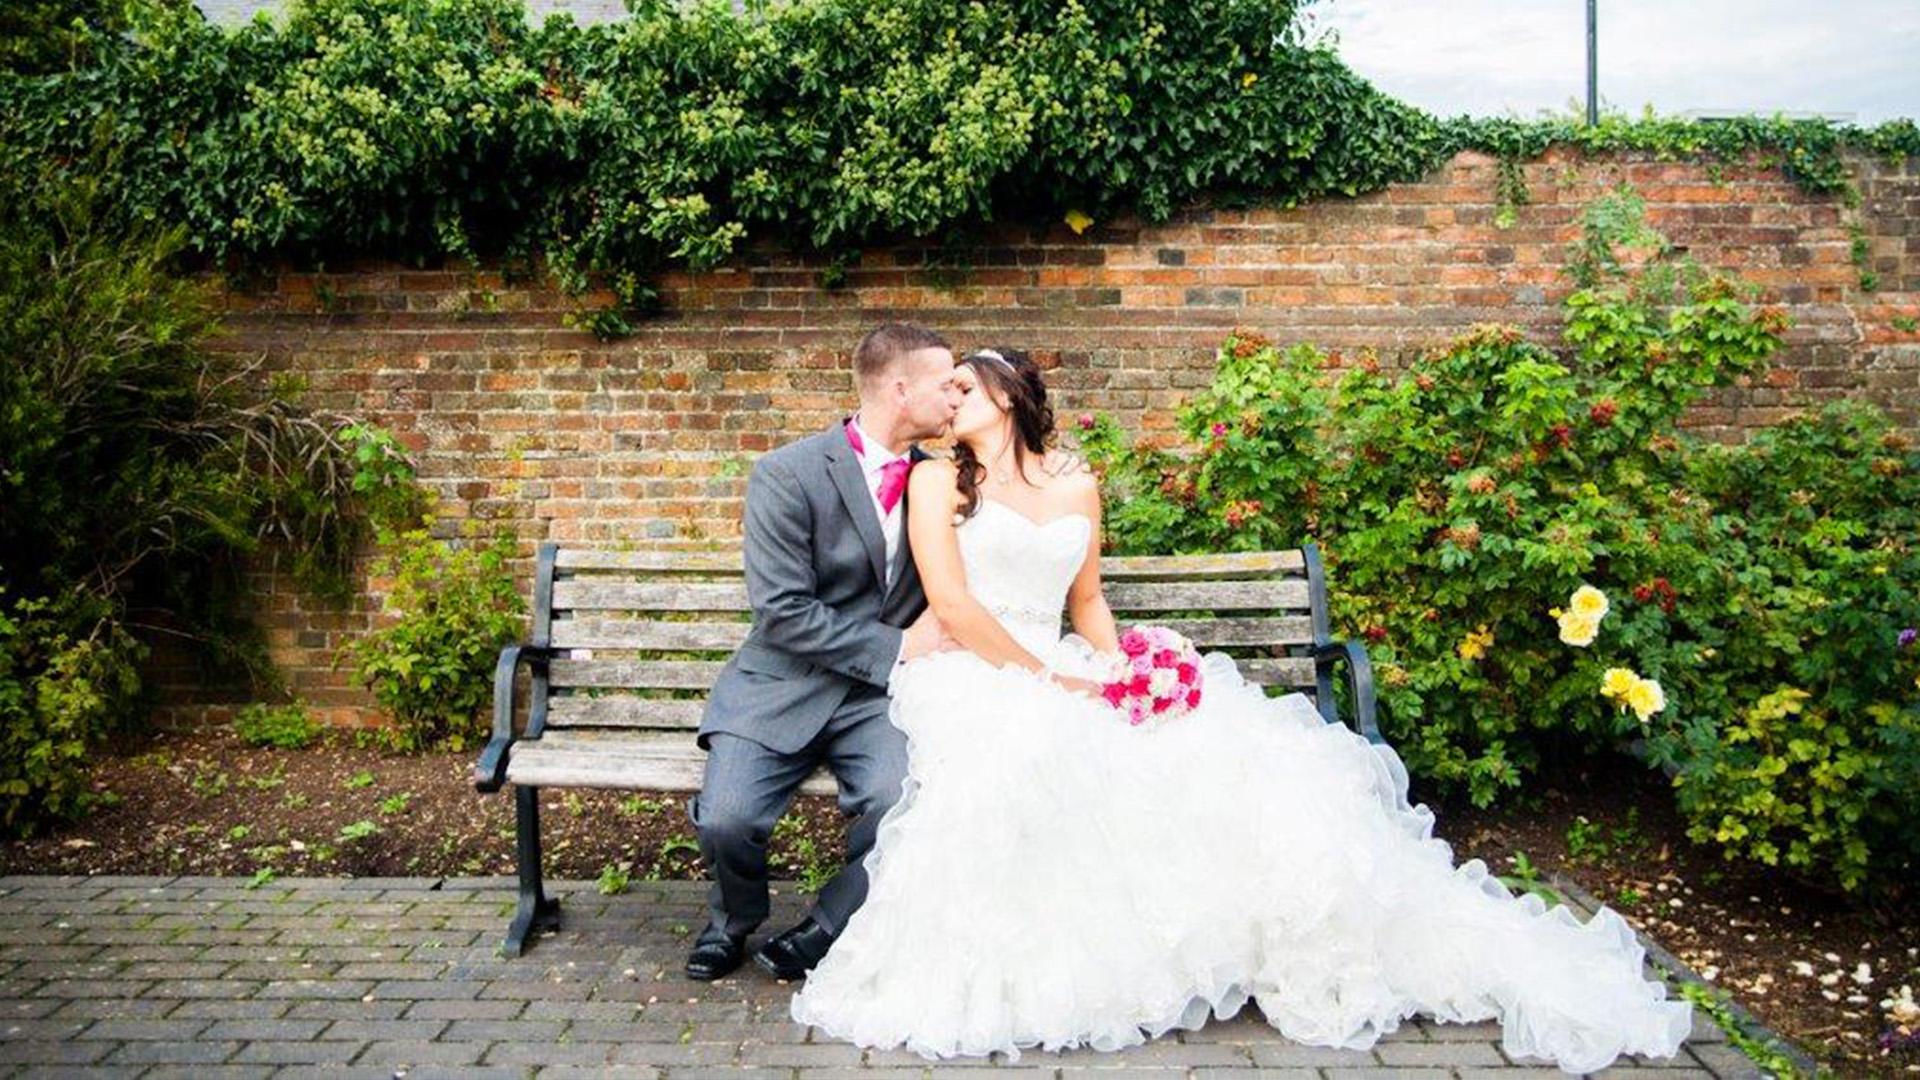 Wedding Venues in Hampshire Mercure Southampton Centre Dolphin Hotel Grand Affair 3